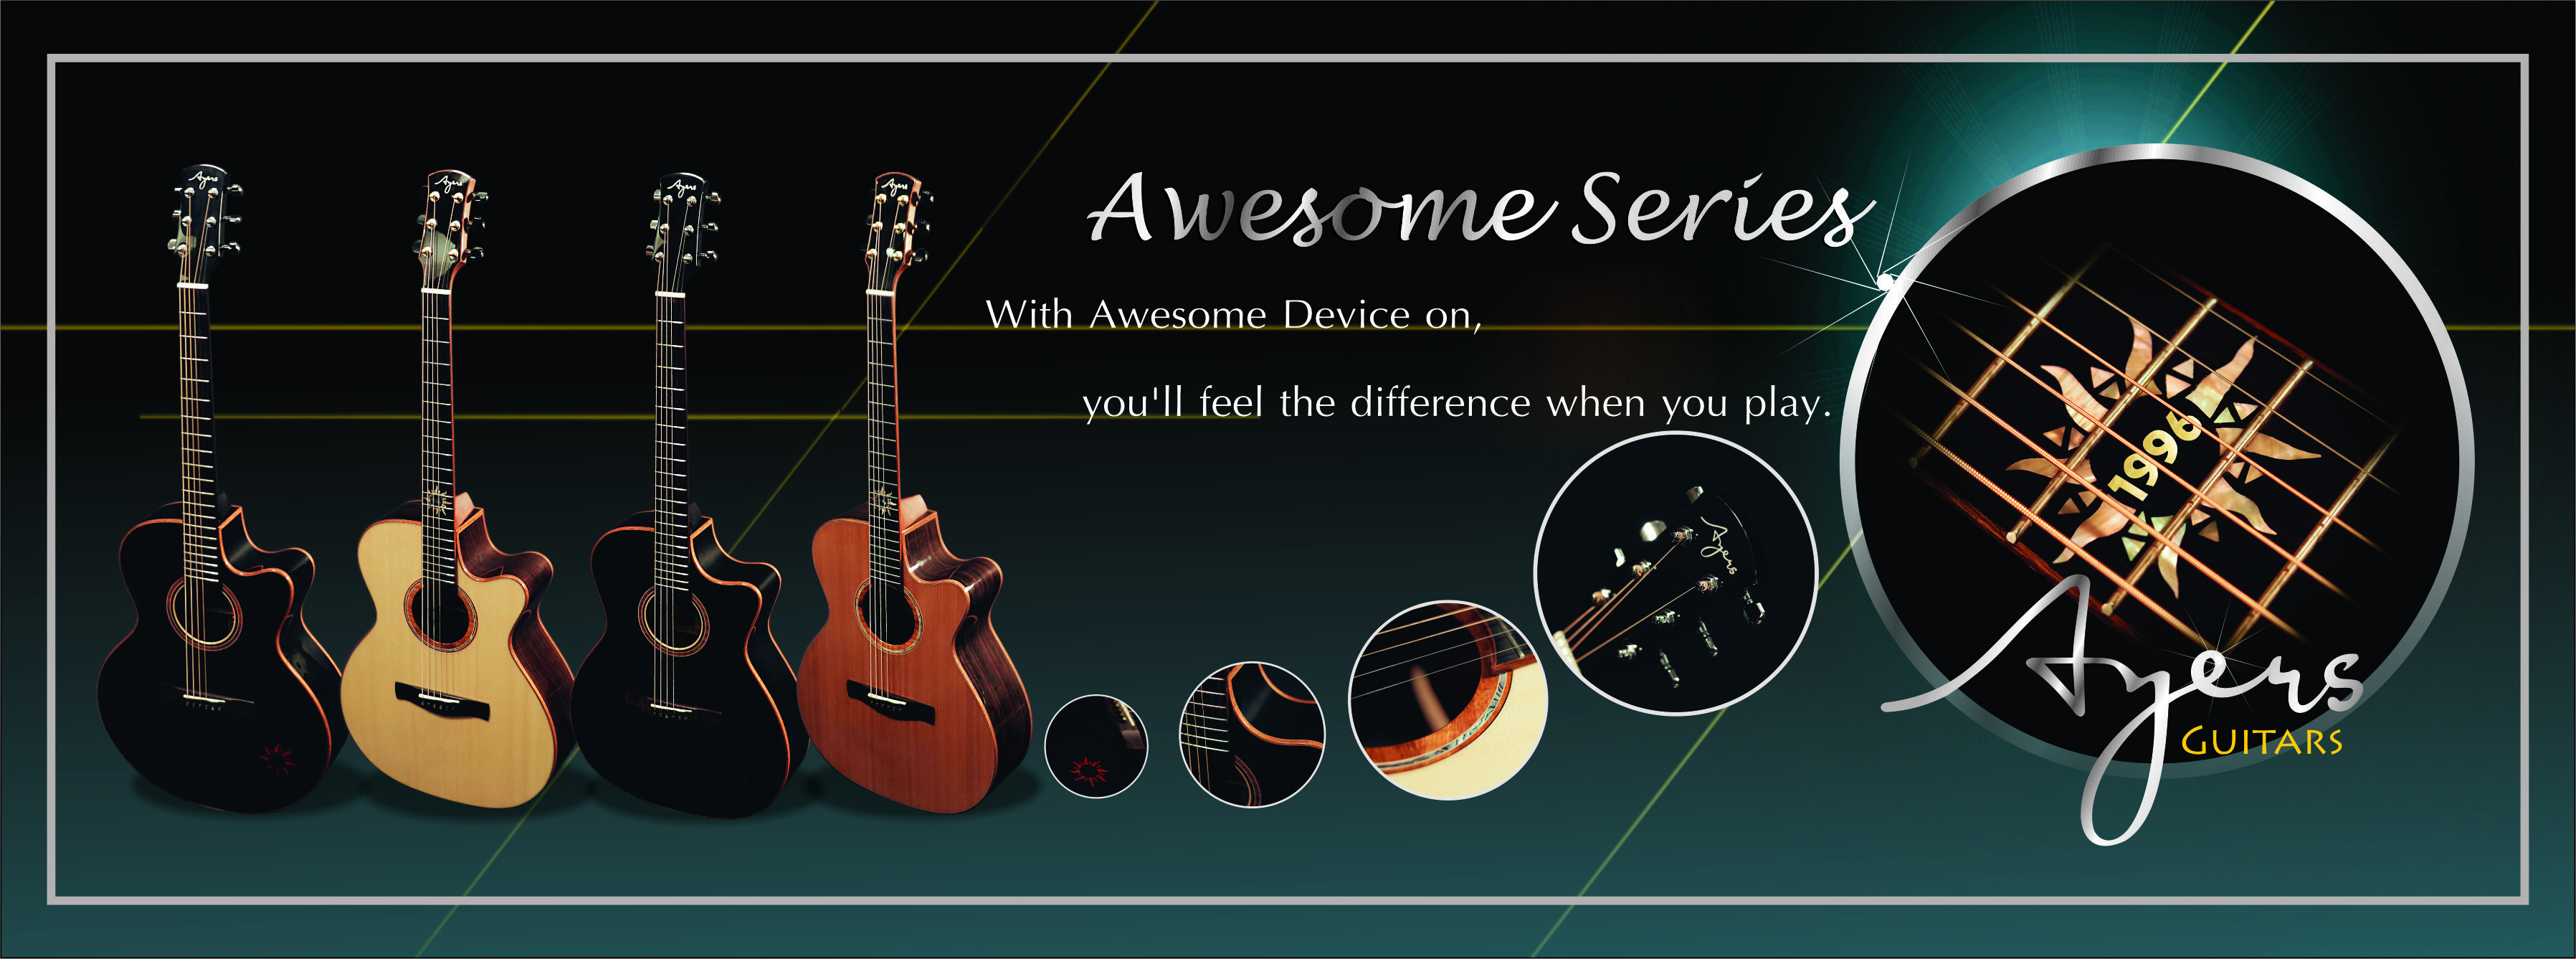 Ayers guitar 2020 latest awesome series